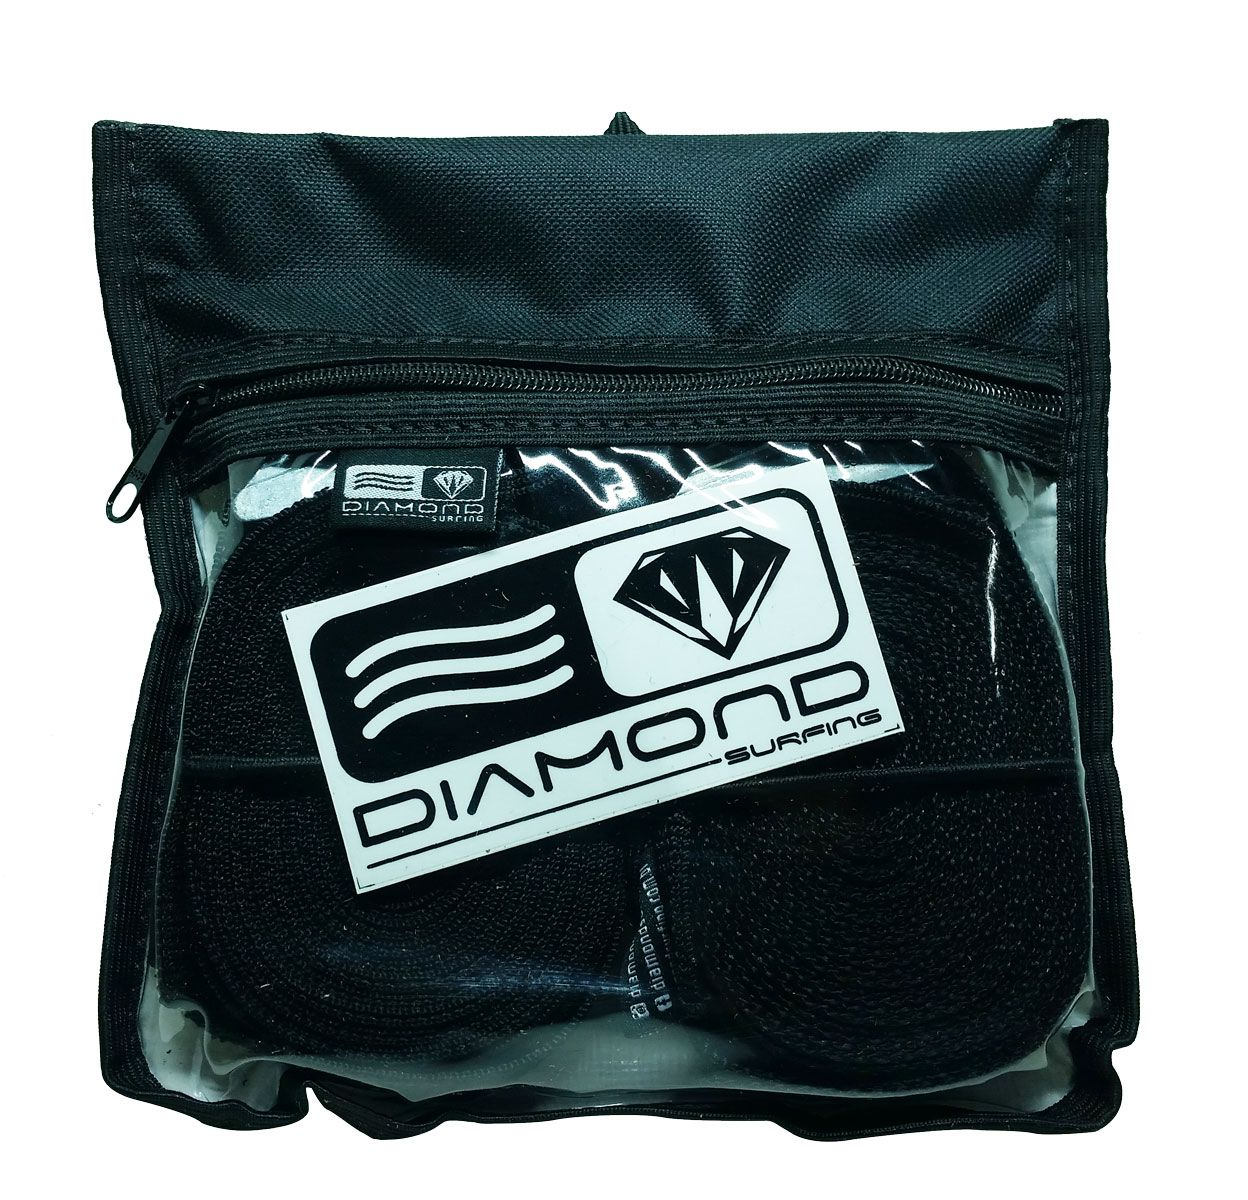 Fita Rack Diamond Surfing